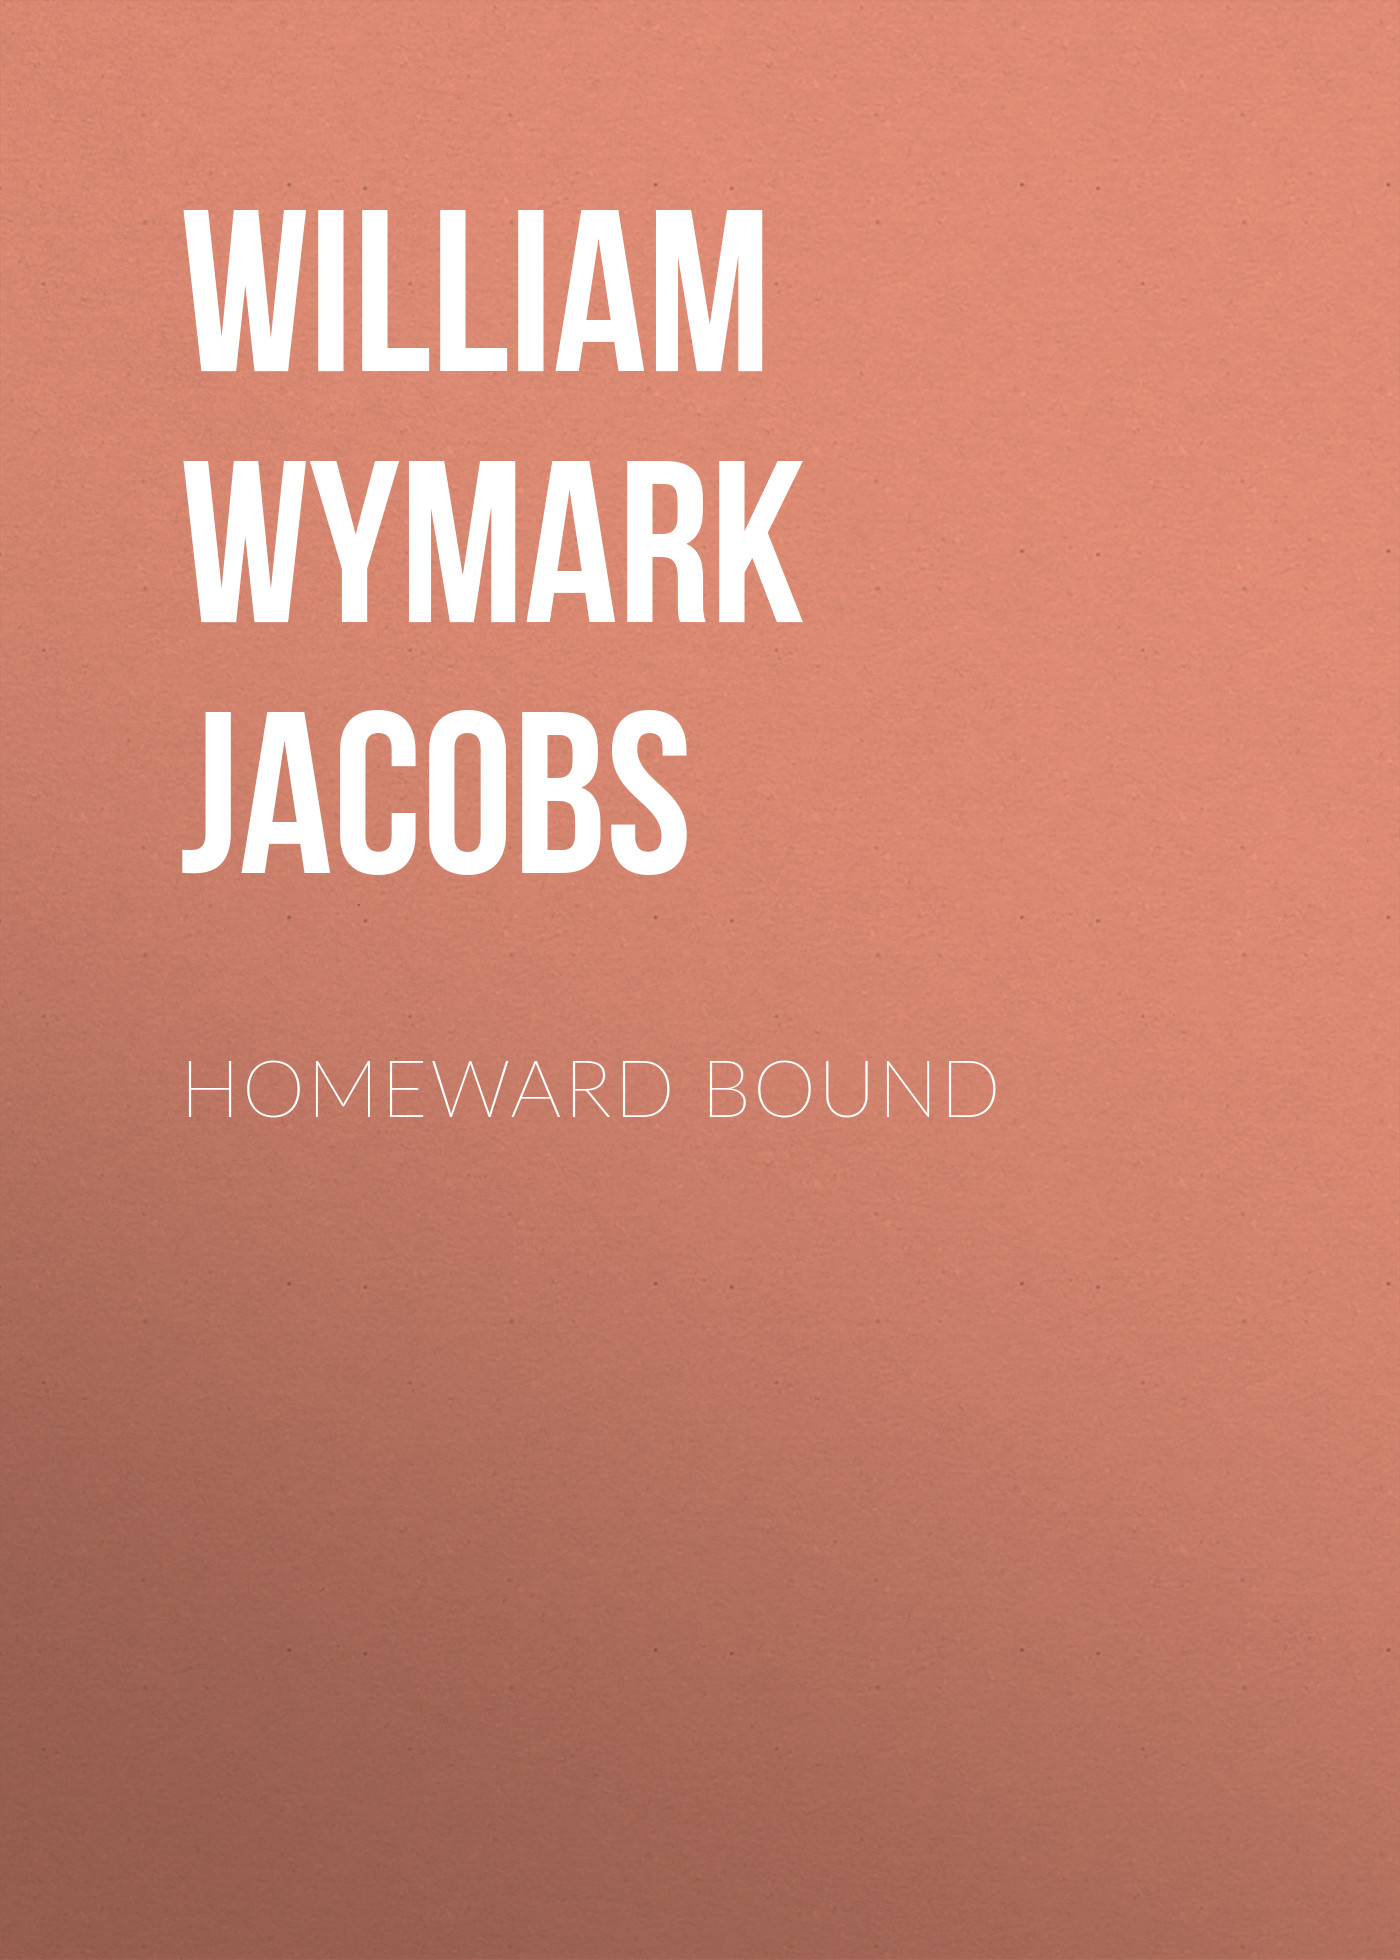 William Wymark Jacobs Homeward Bound